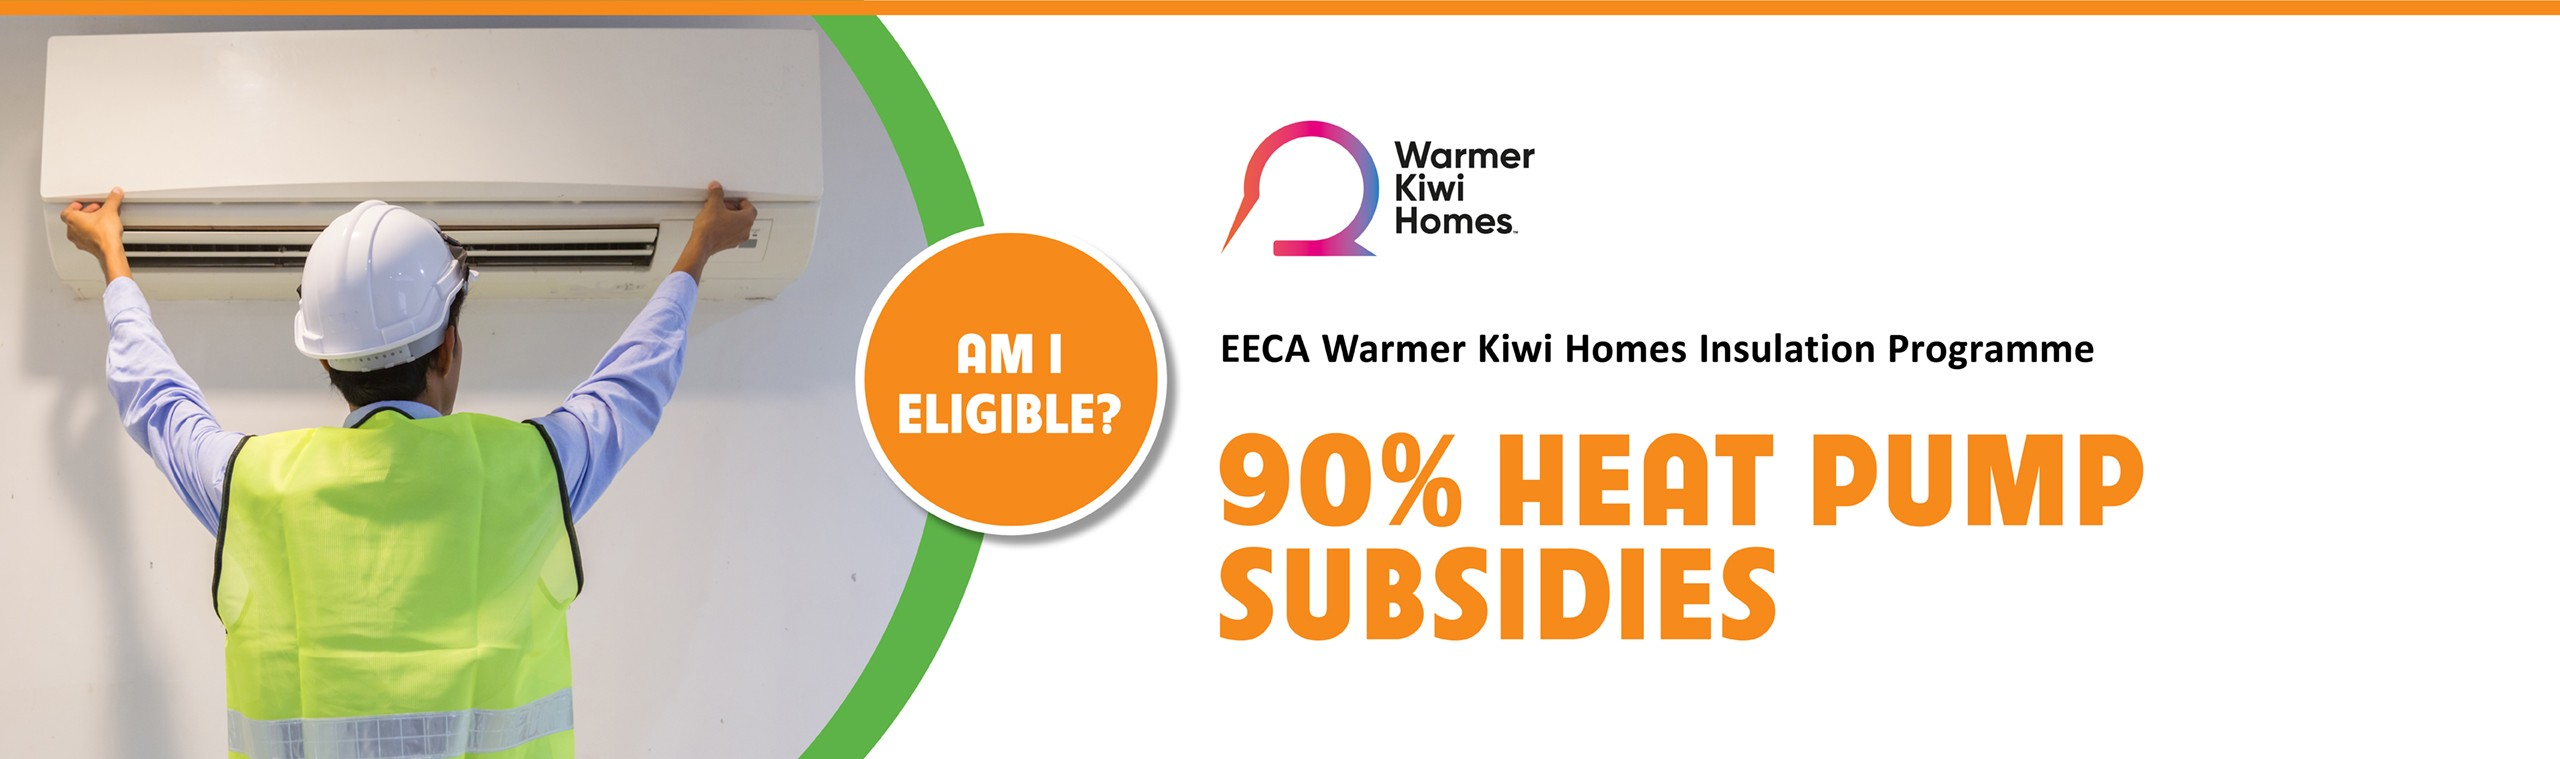 EECA_90_Percent_Heat-Pump_Subsidies_Banner.jpg